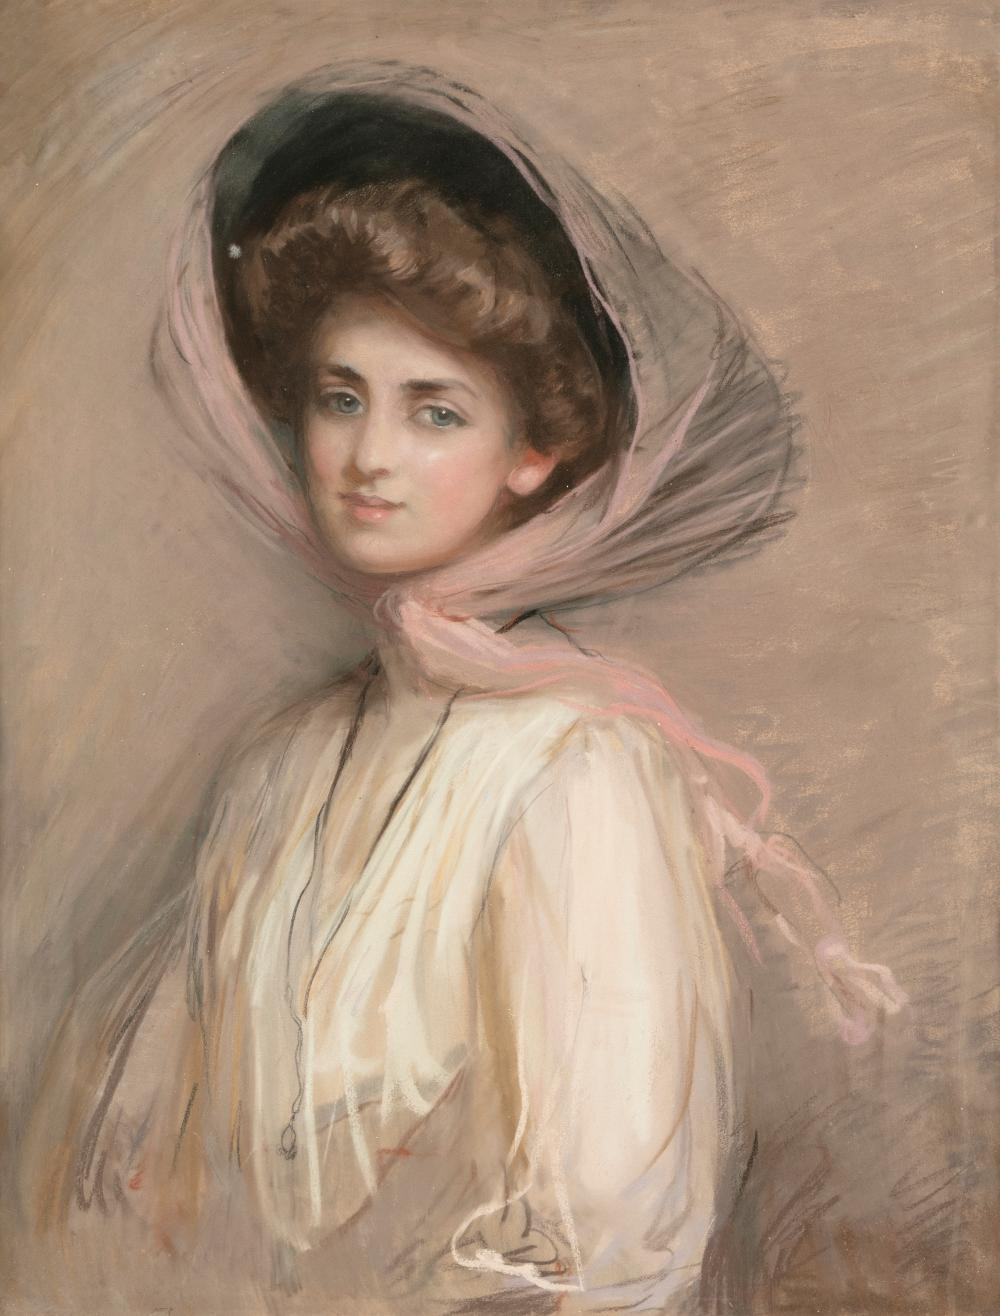 ATTRIBUTED TO PAUL CESAR HELLEU (FRENCH, 1859 - 1927) Half Length Portrait of a Lady wearing a Hat Pastel, 79 x 62.2.cm